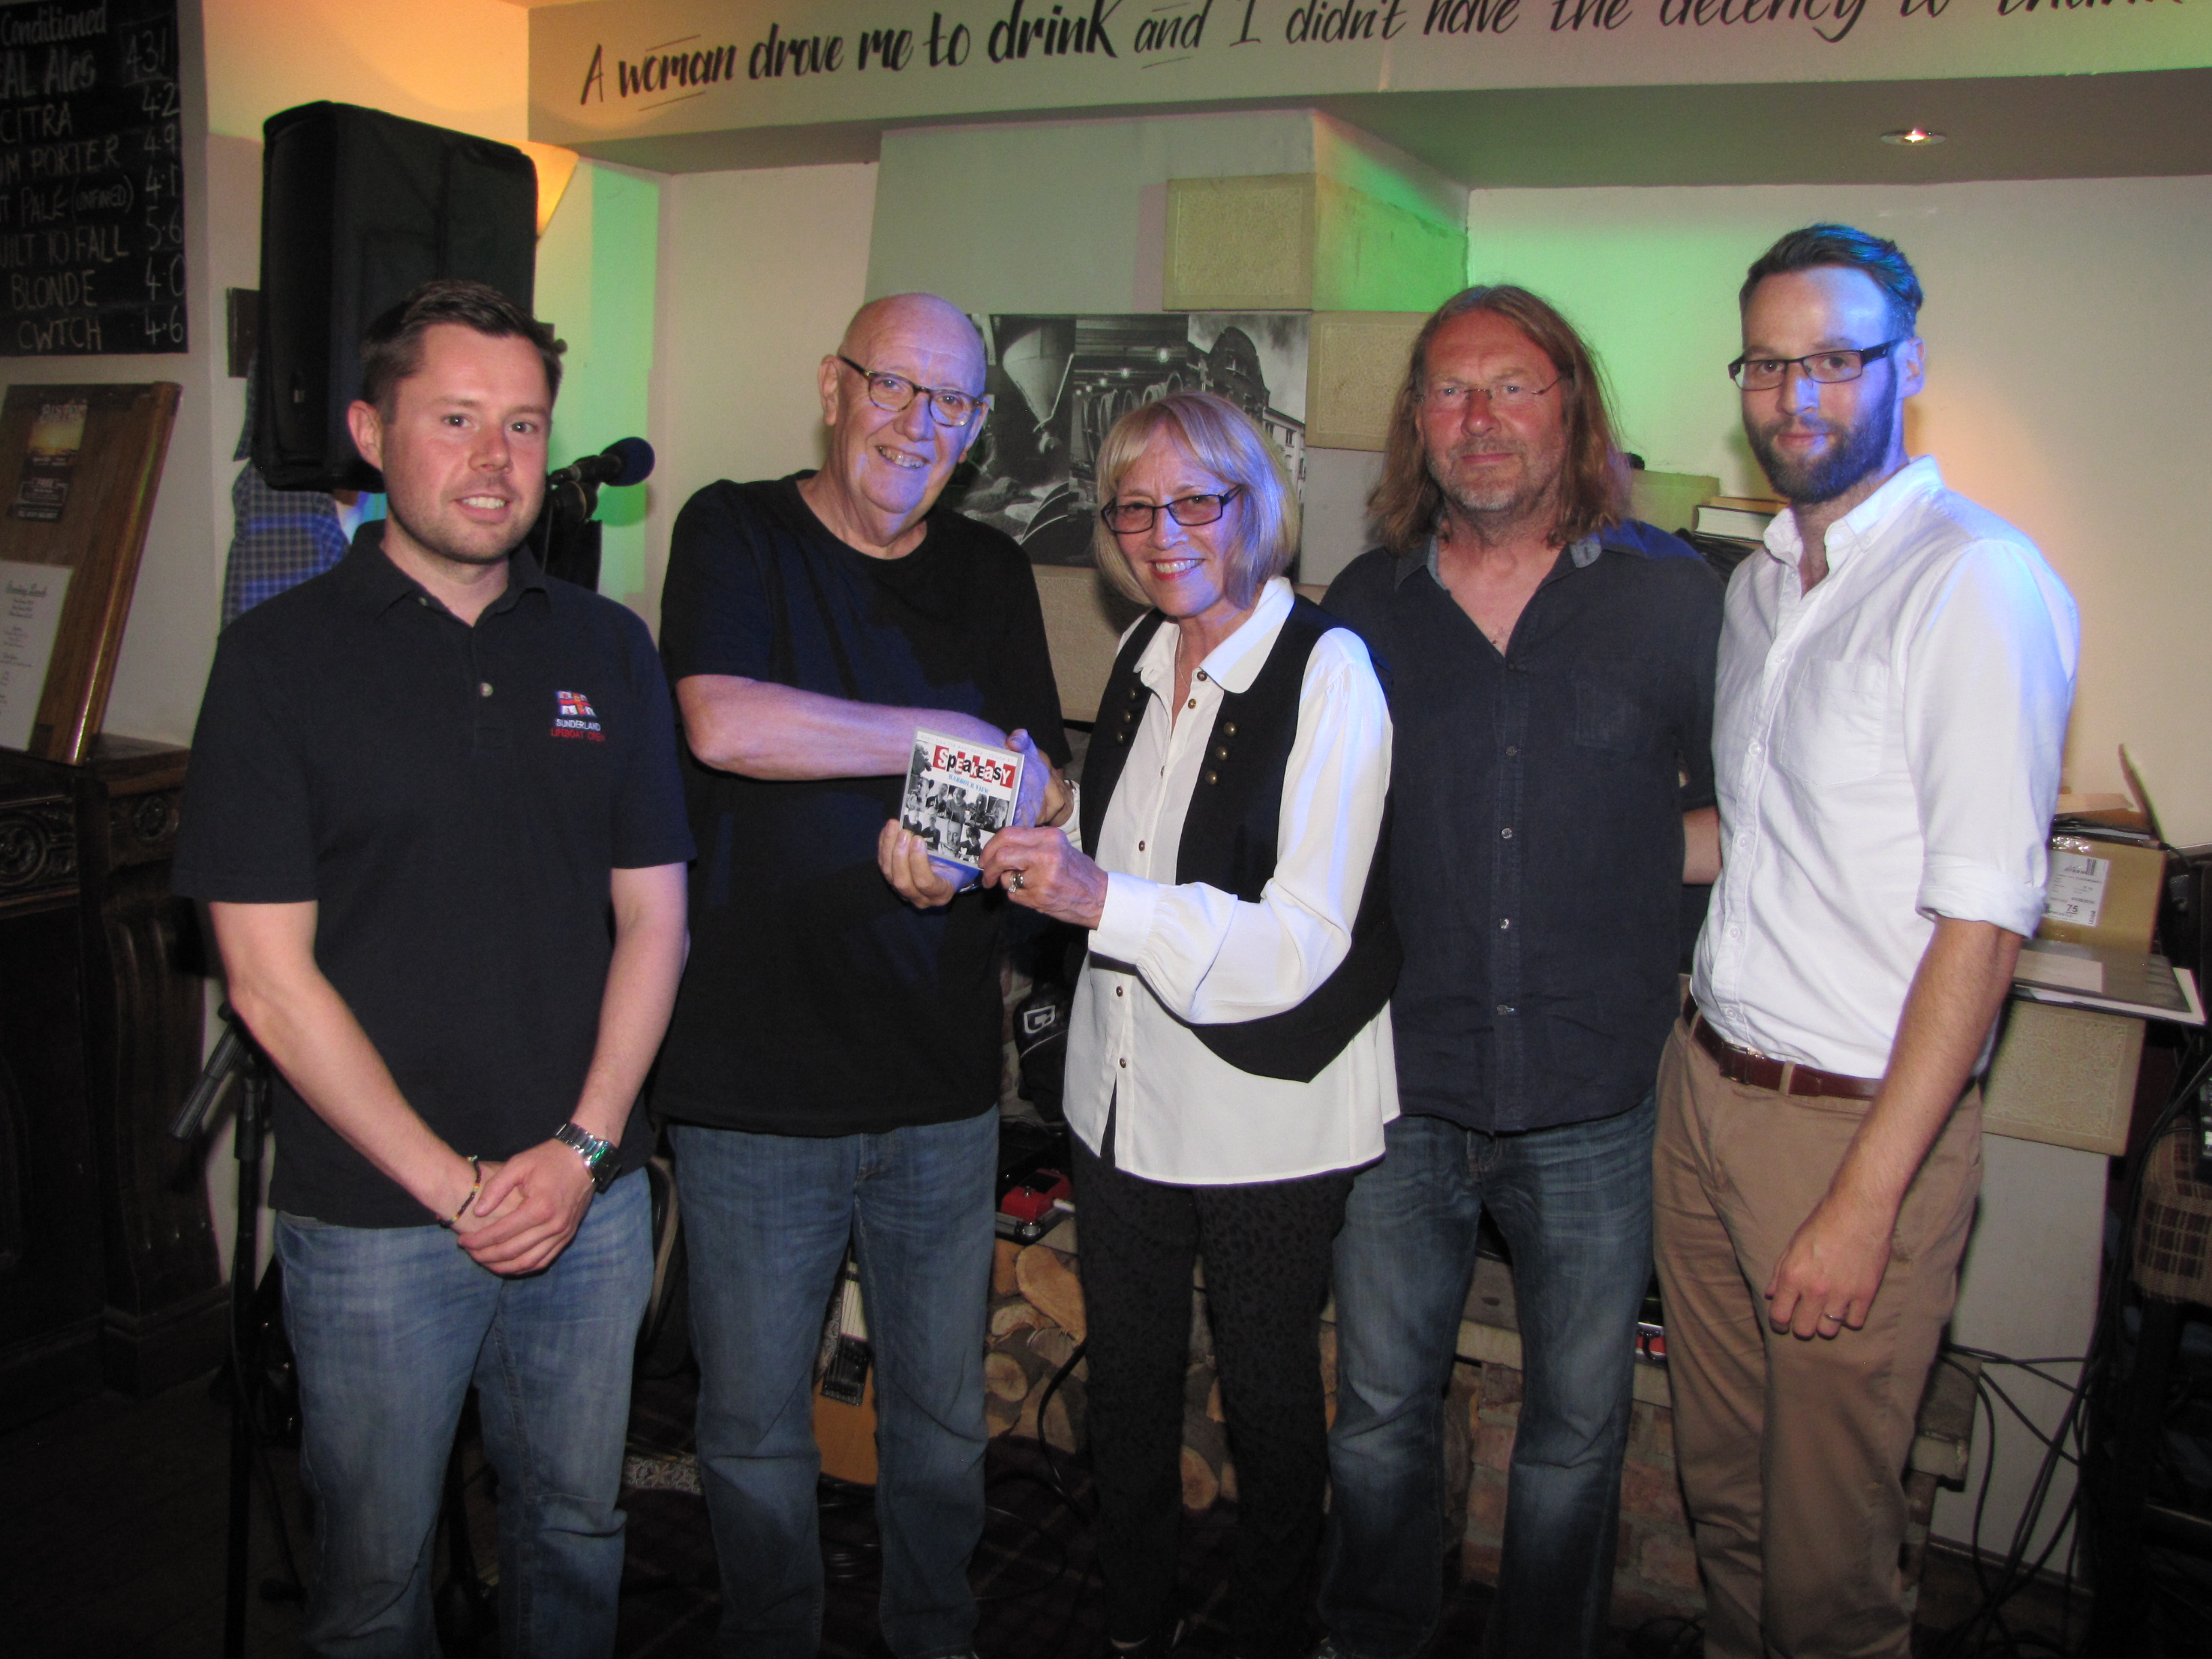 Image of Andrew Cantle's mam and brother with artists from the CD.